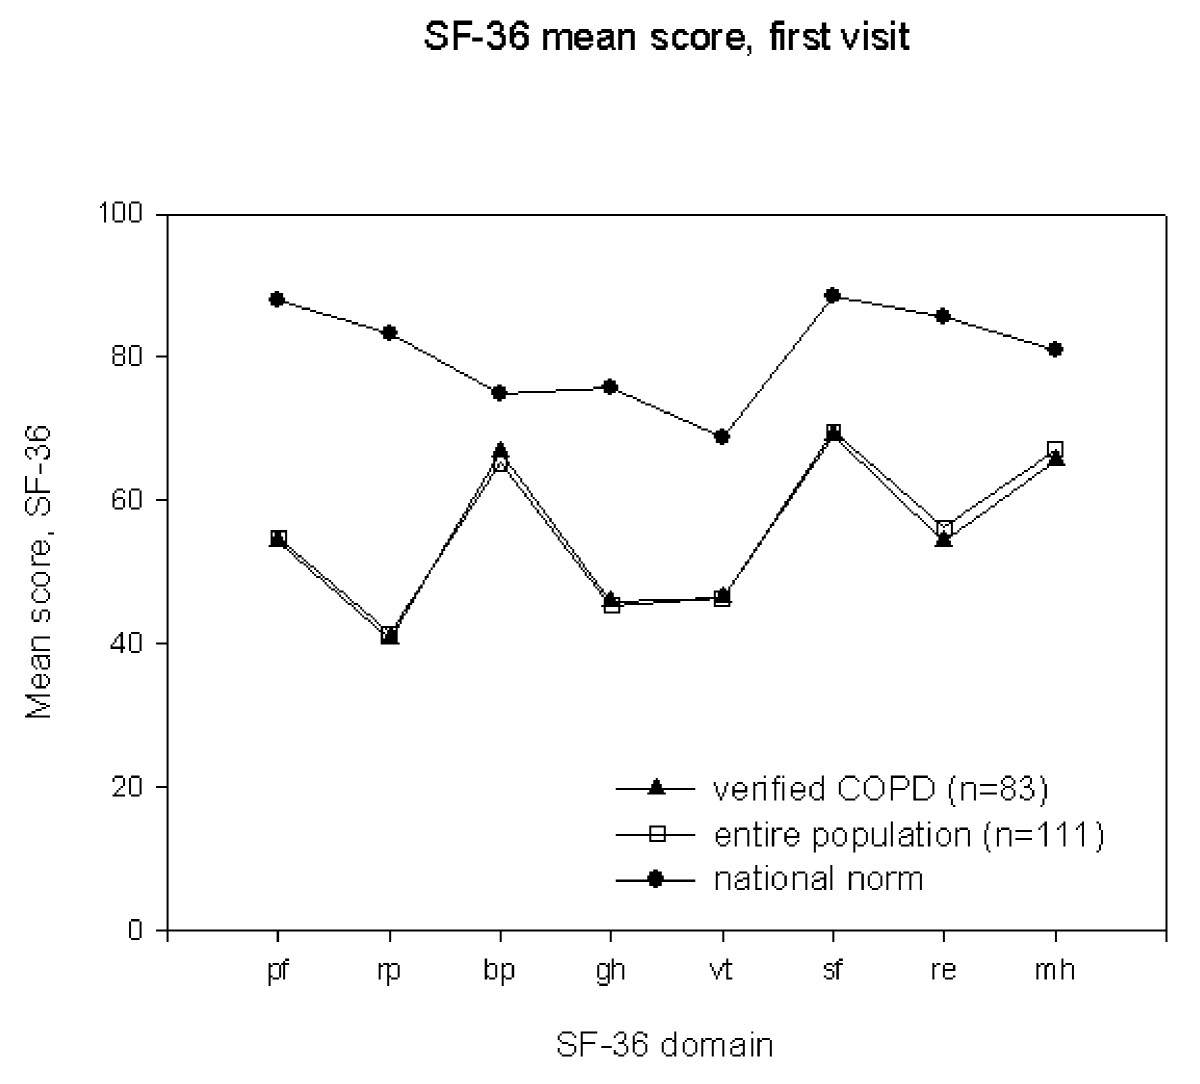 http://static-content.springer.com/image/art%3A10.1186%2F1477-7525-7-26/MediaObjects/12955_2008_Article_543_Fig1_HTML.jpg